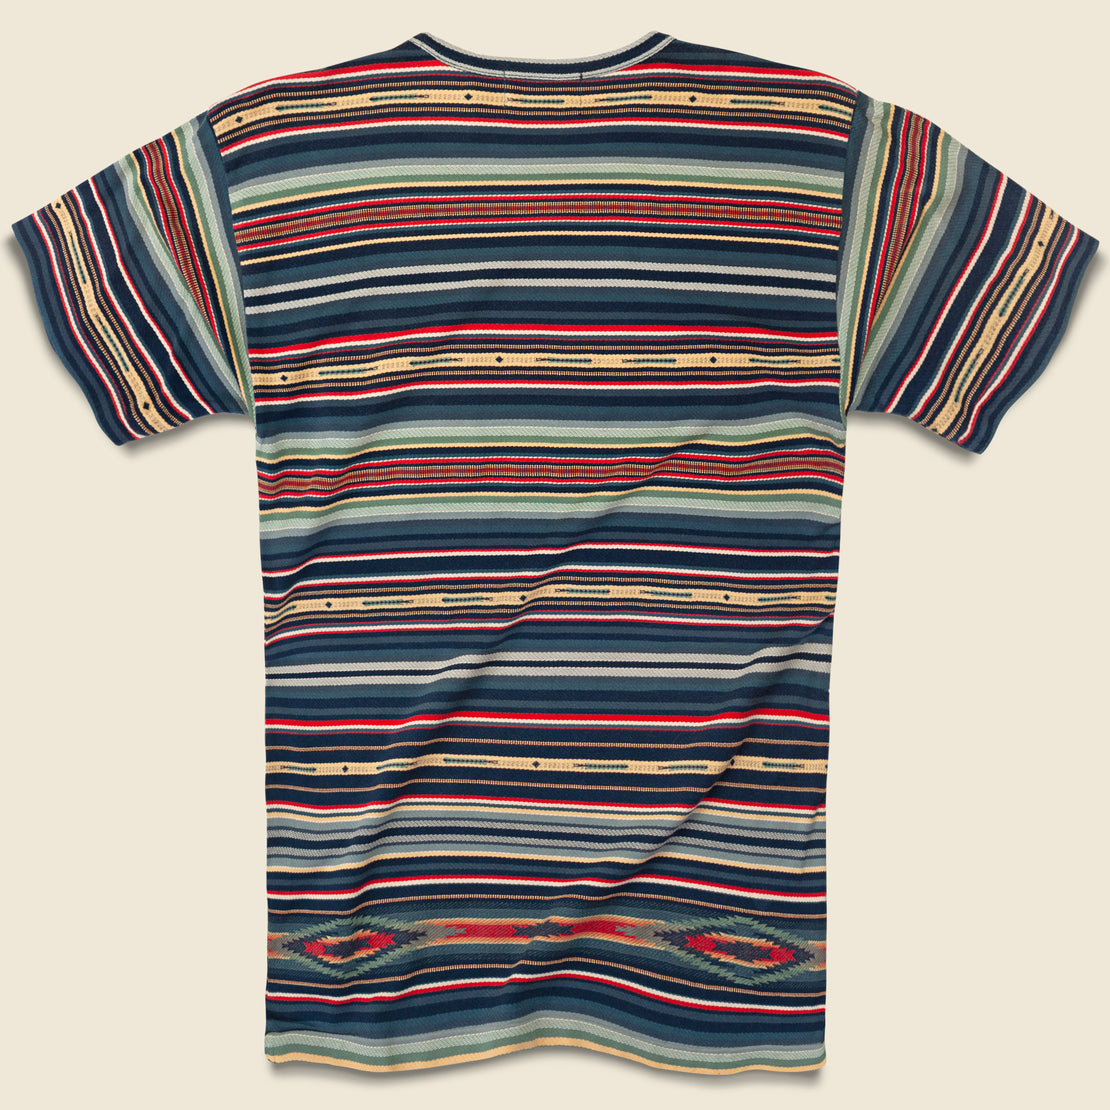 Serape-Striped Pocket Tee - Indigo